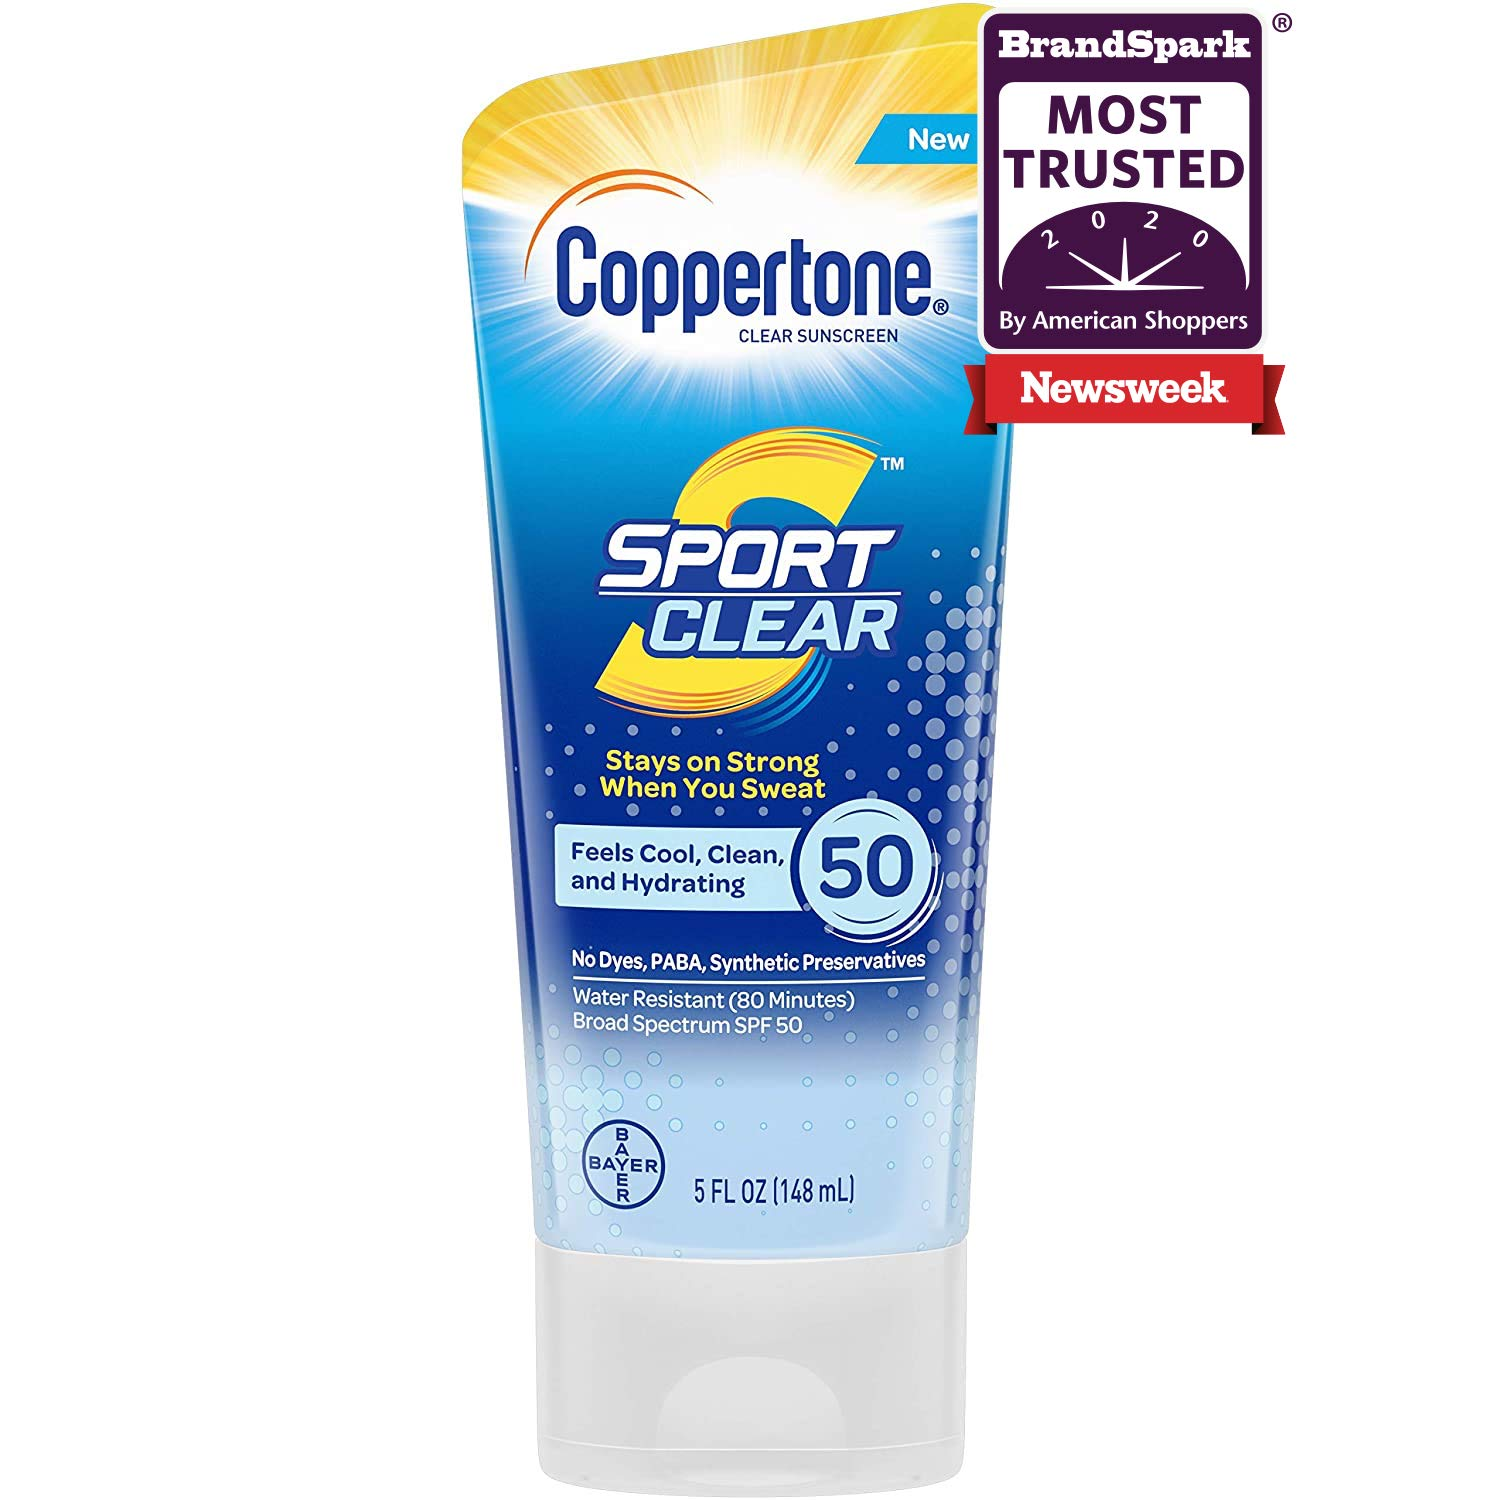 Coppertone Sport Clear SPF 50 Sunscreen Lotion, Water Resistant, Non-Greasy, Broad Spectrum UVA/UVB Protection, Clean, Cool, White, 5 Ounce